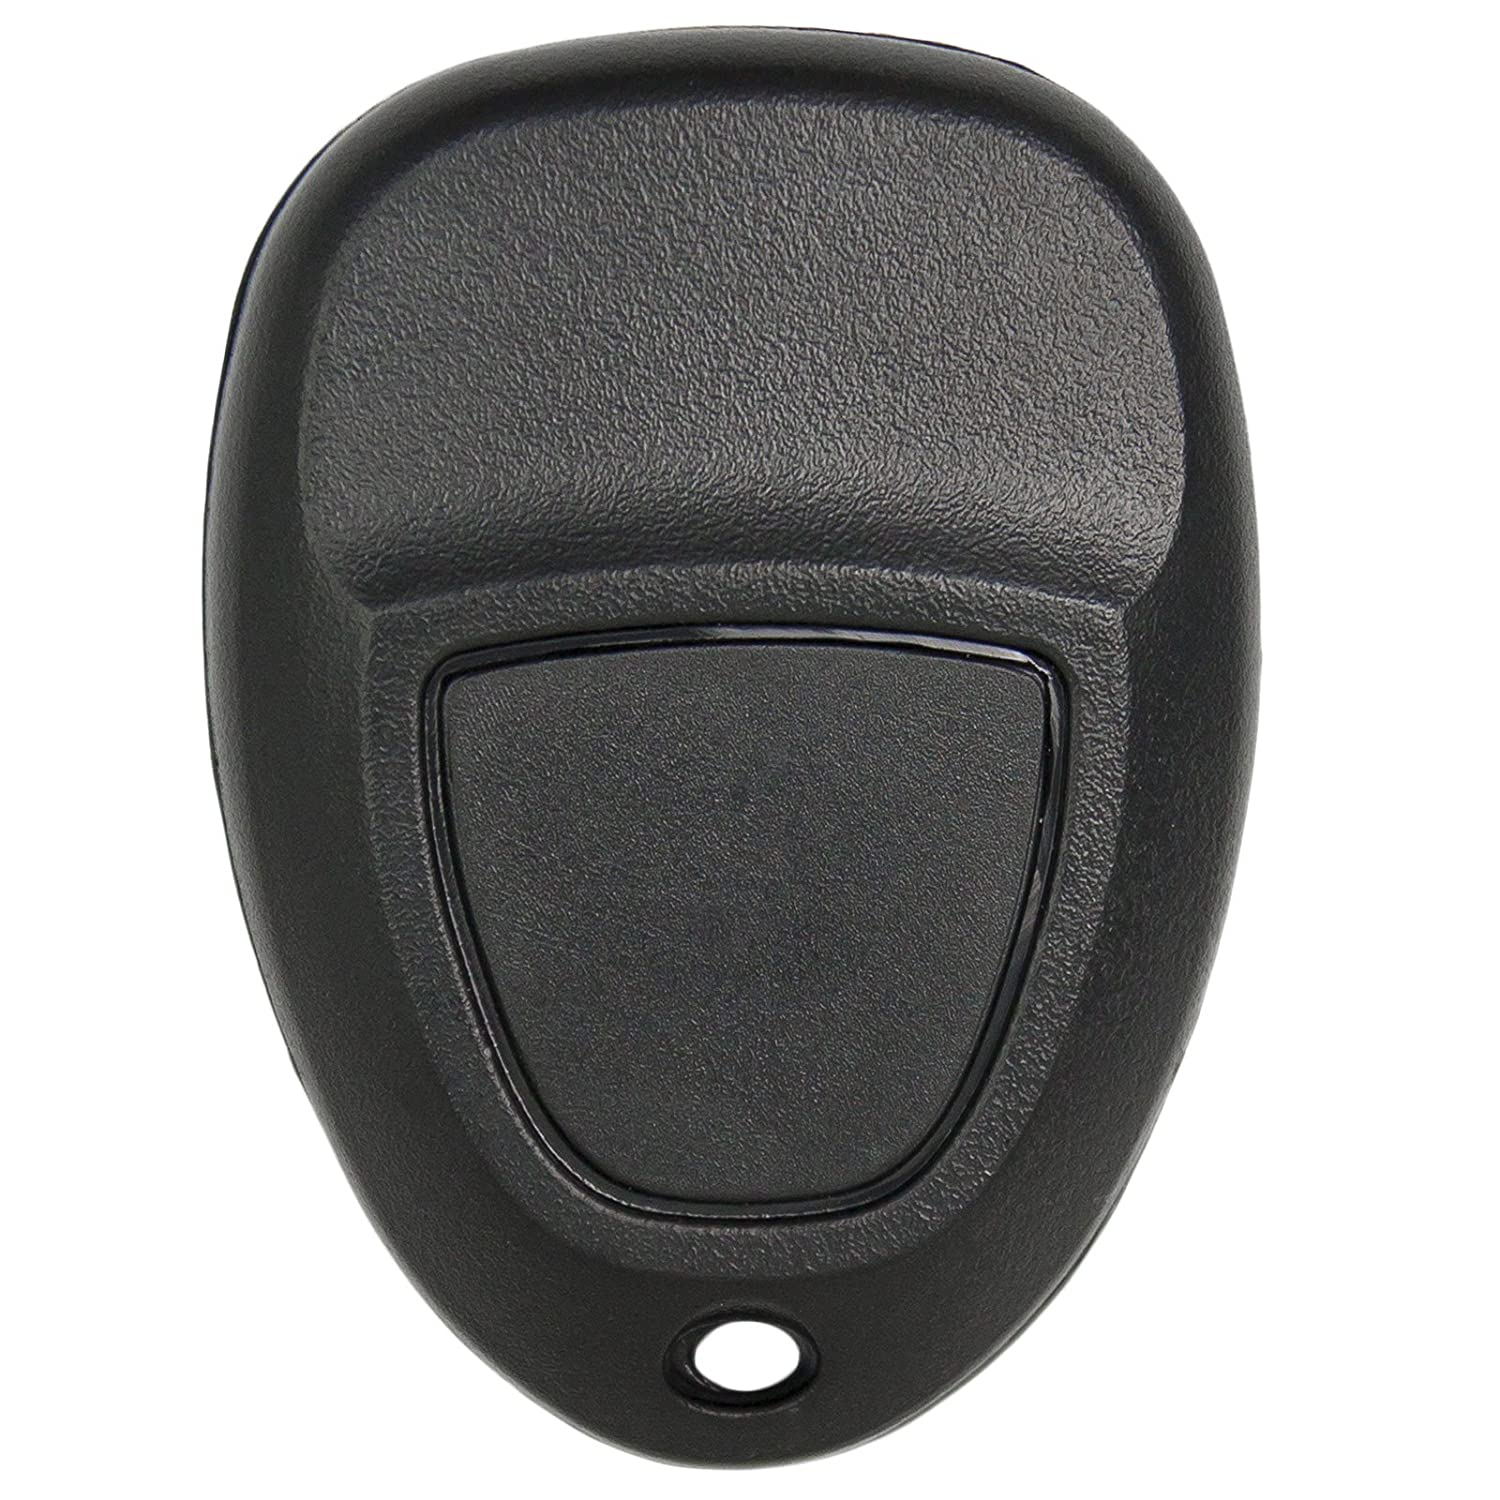 2 Pack Self-programming Keyless2Go Keyless Entry Car Key Replacement for Vehicles That Use 5 Button OUC60270 OUC60221